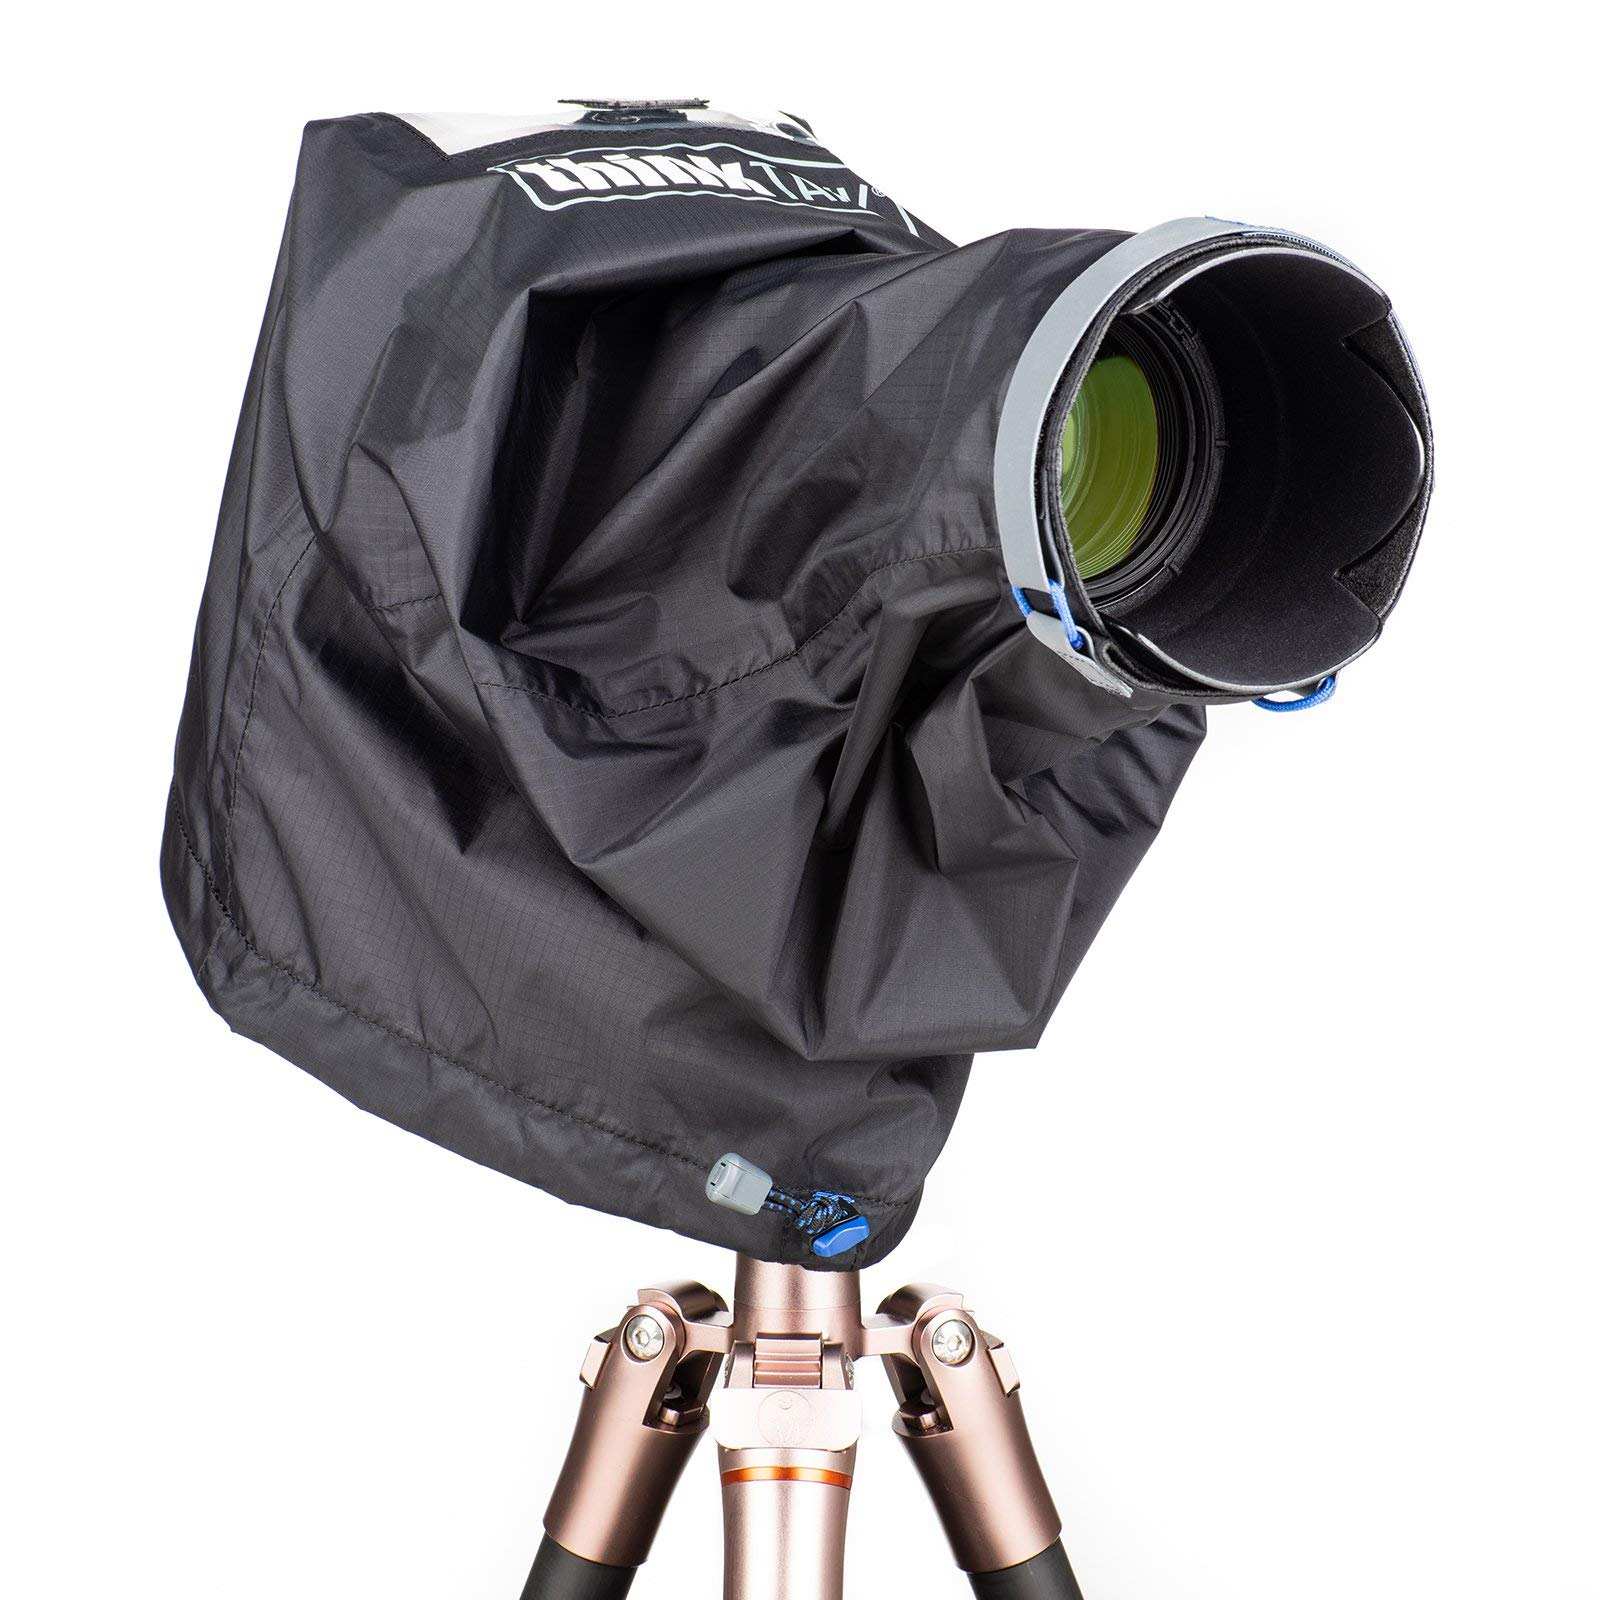 Think Tank Photo Emergency Rain Covers for DSLR and Mirrorless Cameras with up to a 70-200mm Lens - Medium by Think Tank